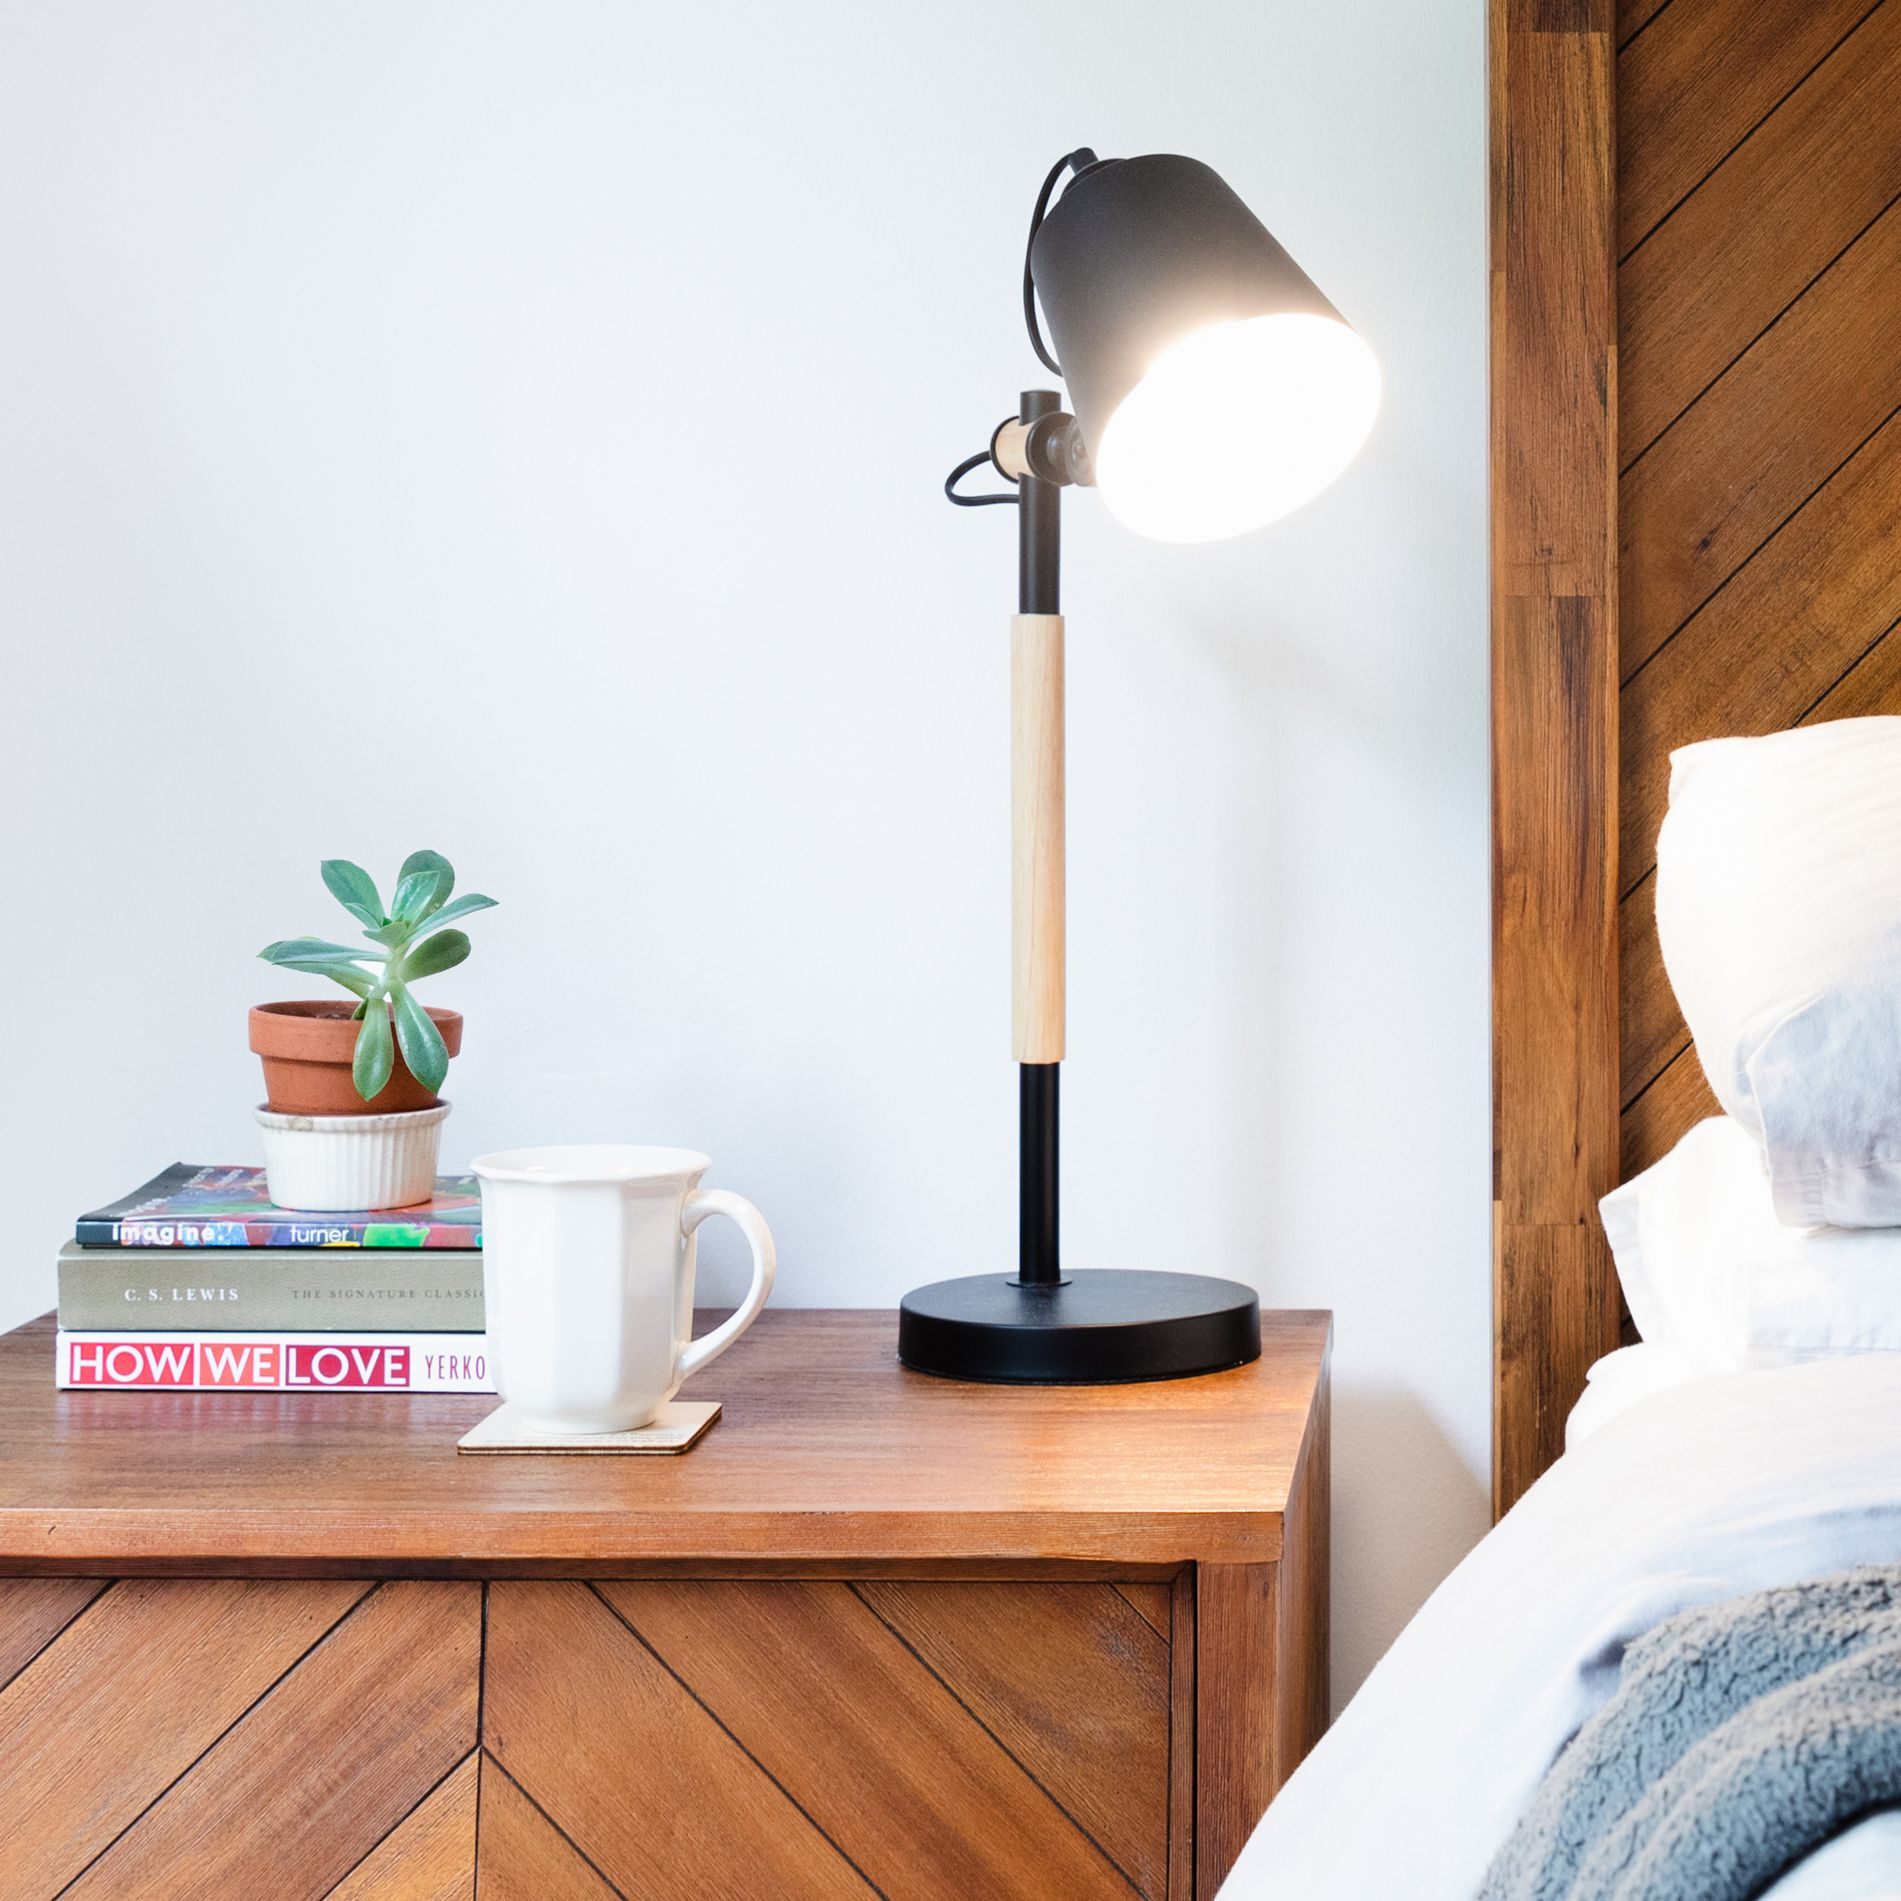 How To Pick Nightstand Lamps, Best Bedside Table Lamps For Reading